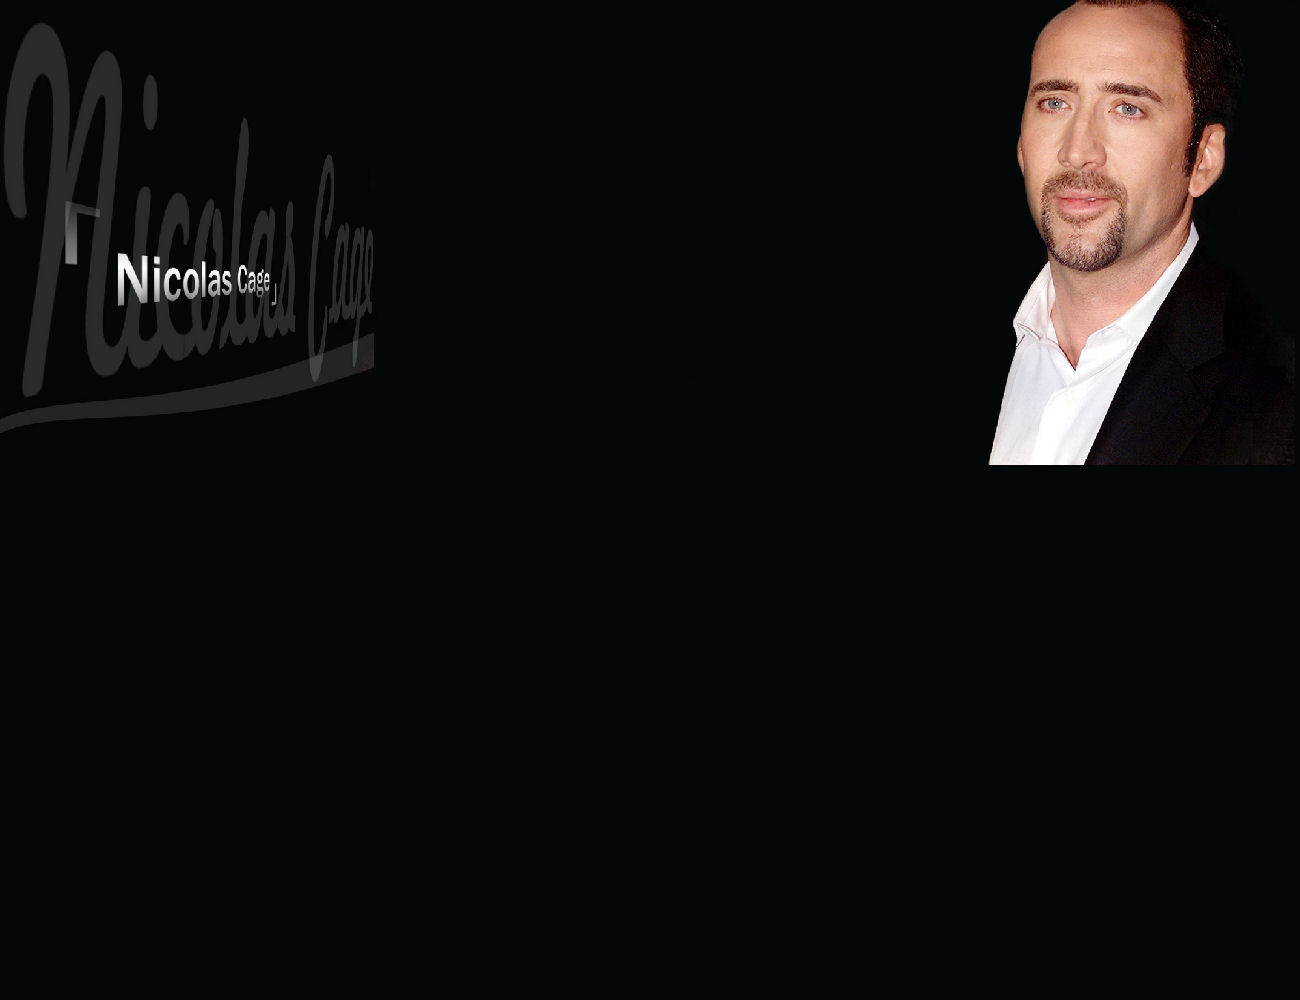 Nicolas Cage Twitter Backgrounds Nicolas Cage Twitter Themes 1300x1000